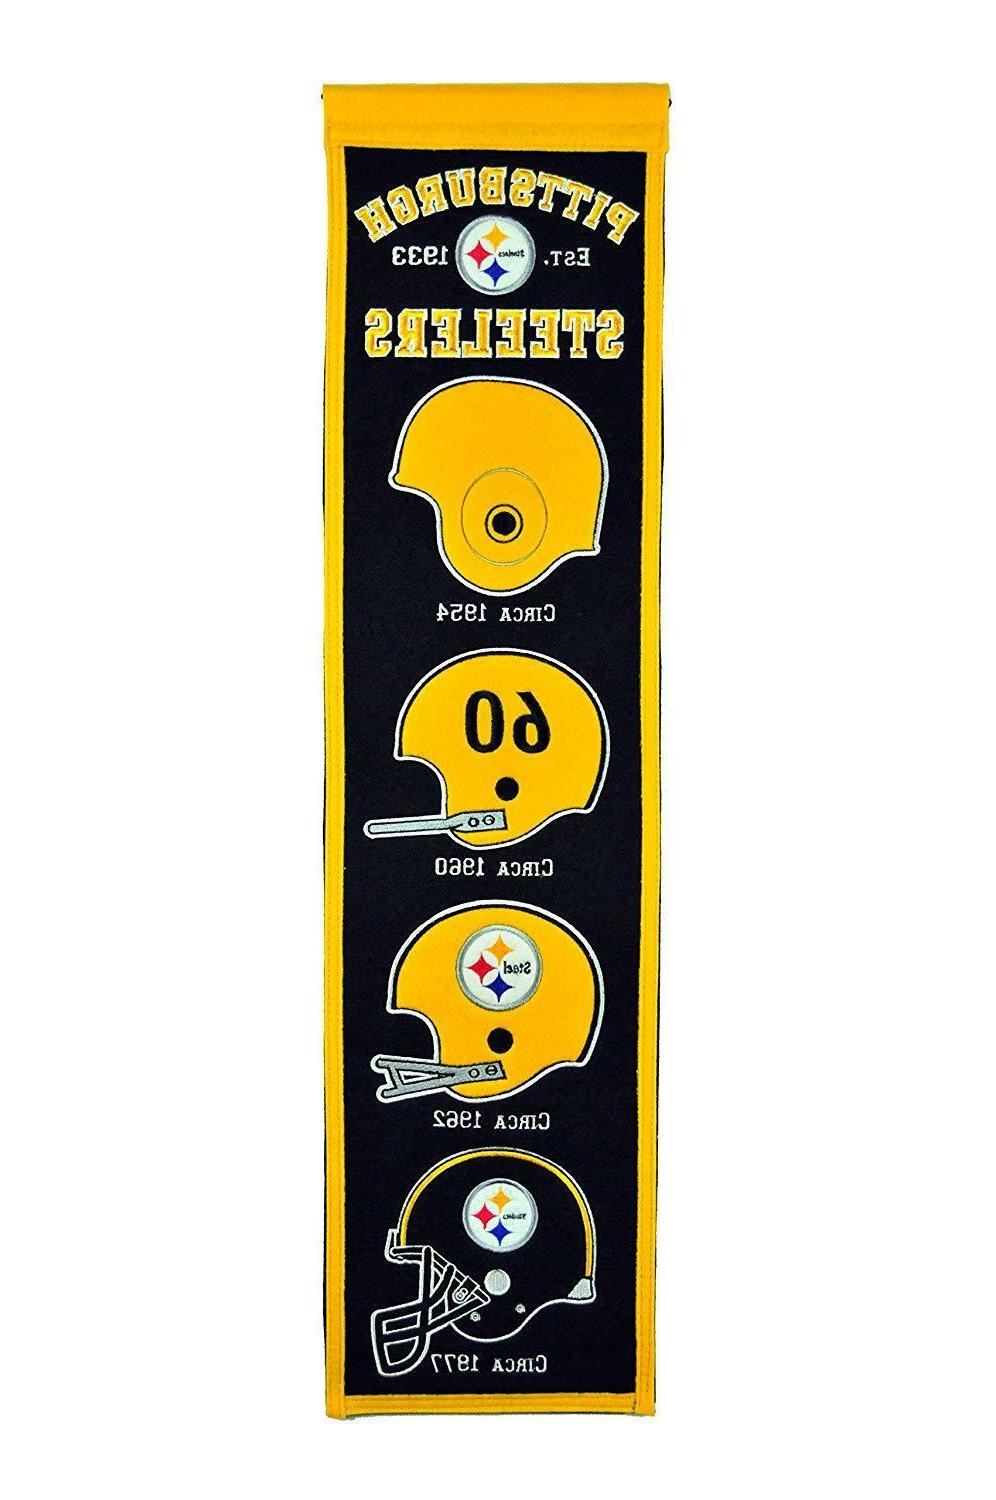 pittsburgh steelers heritage banner embroidered wool flag